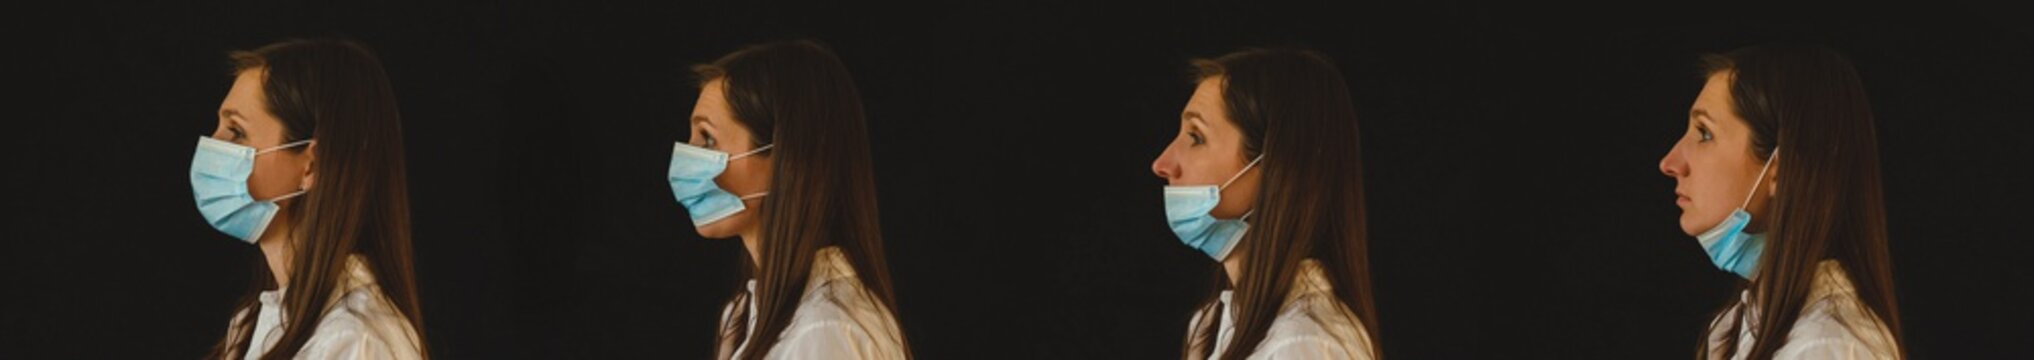 The right and wrong way to wear a mask. Coronavirus protective mask wearing face protective mask against corona virus banner panoramic medical professional preventive gear.